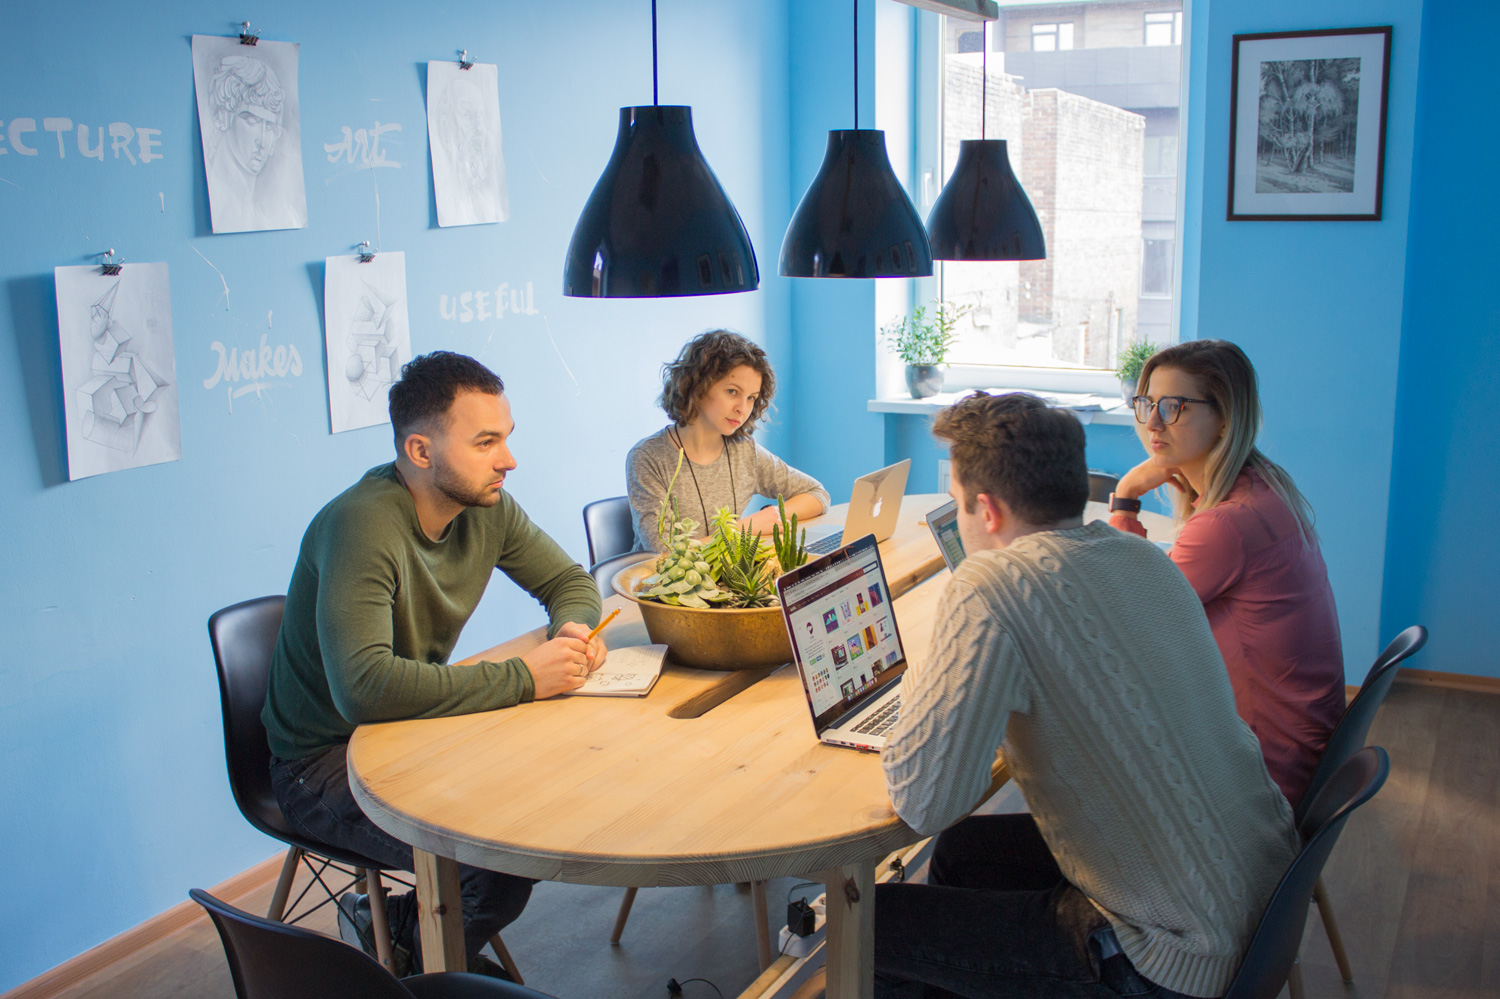 Helpful Tips on Effective Teamwork in Digital Agency